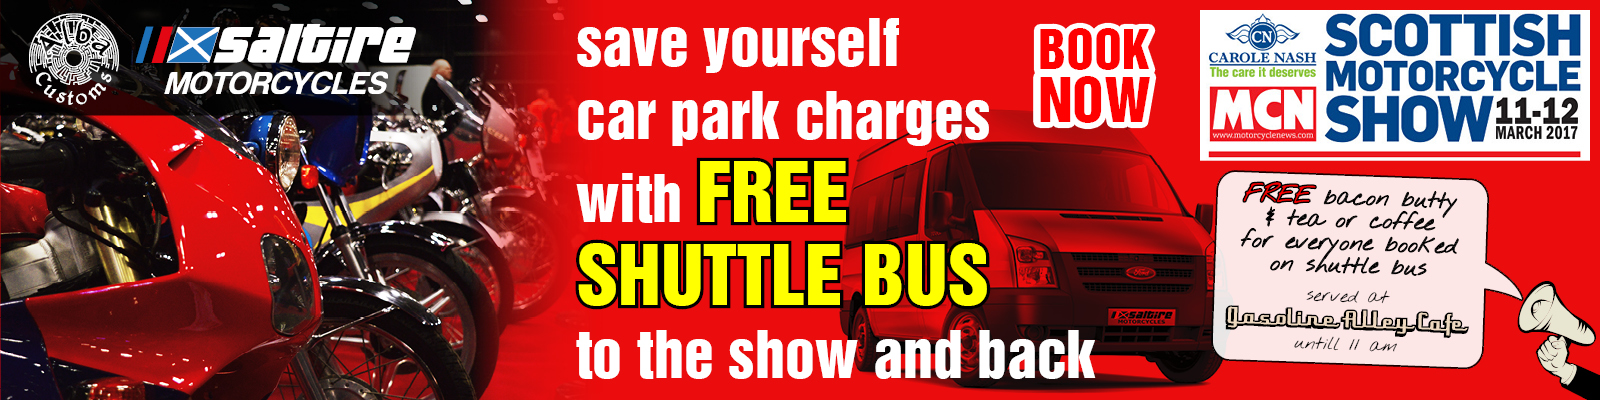 MCN Scottish Motorcycle Show Shuttle Bus